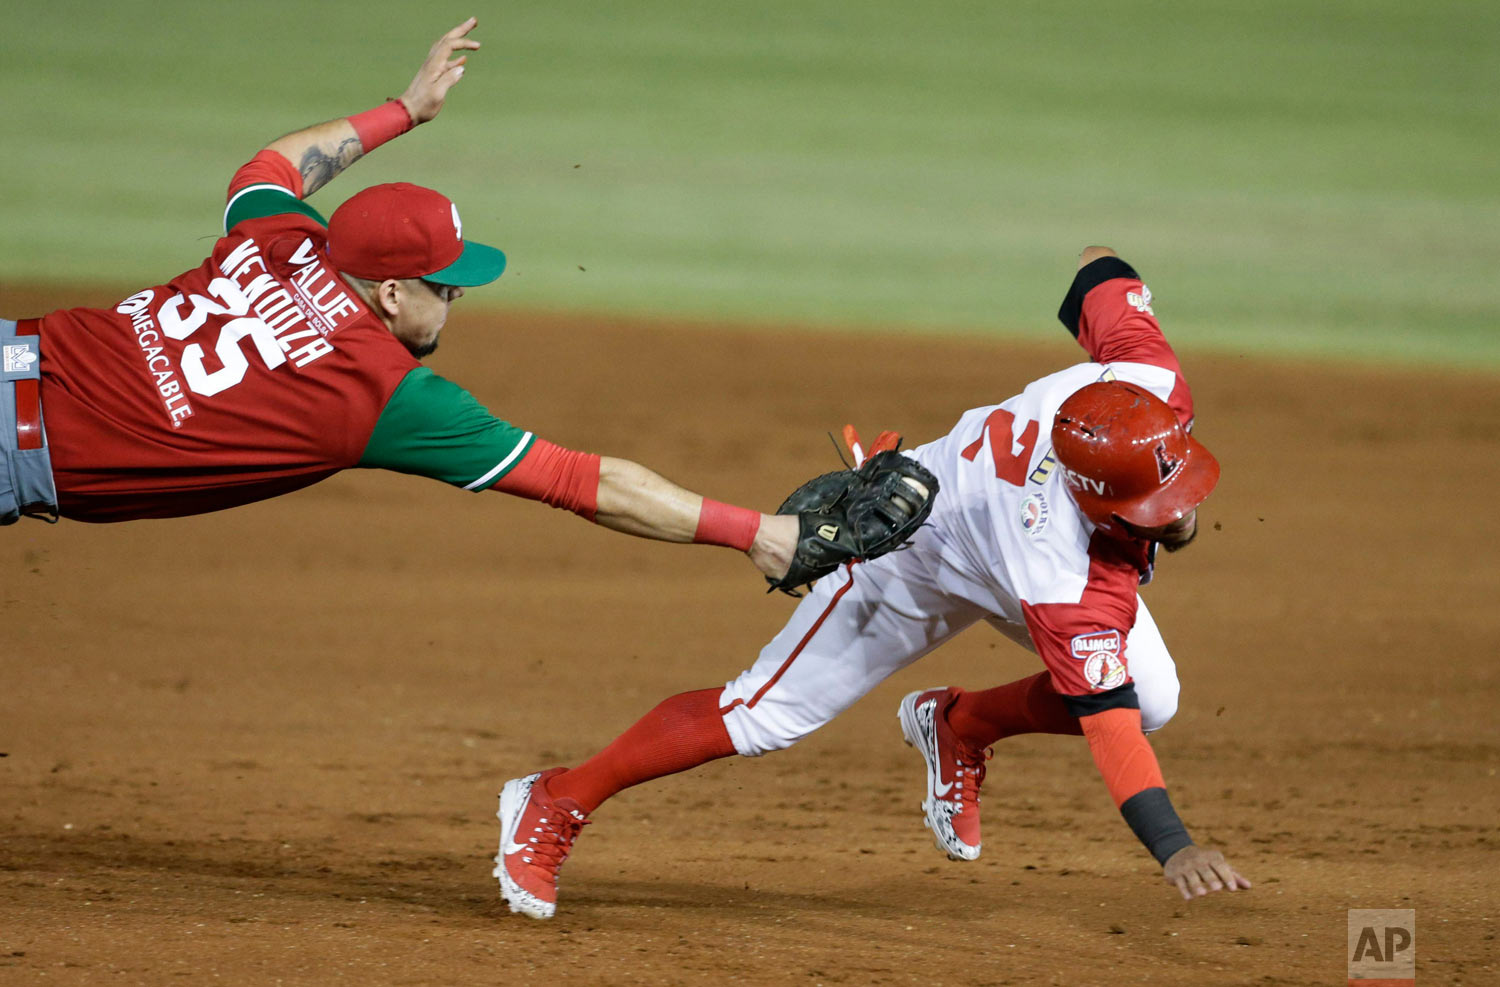 Victor Mendoza of Mexico's Los Charros de Jalisco tags out Alexi Amarista of Venezuela's Cardenales de Lara, on the opening day of the Caribbean Series baseball tournament at Rod Carew stadium in Panama City, Feb. 4, 2019. (AP Photo/Arnulfo Franco)